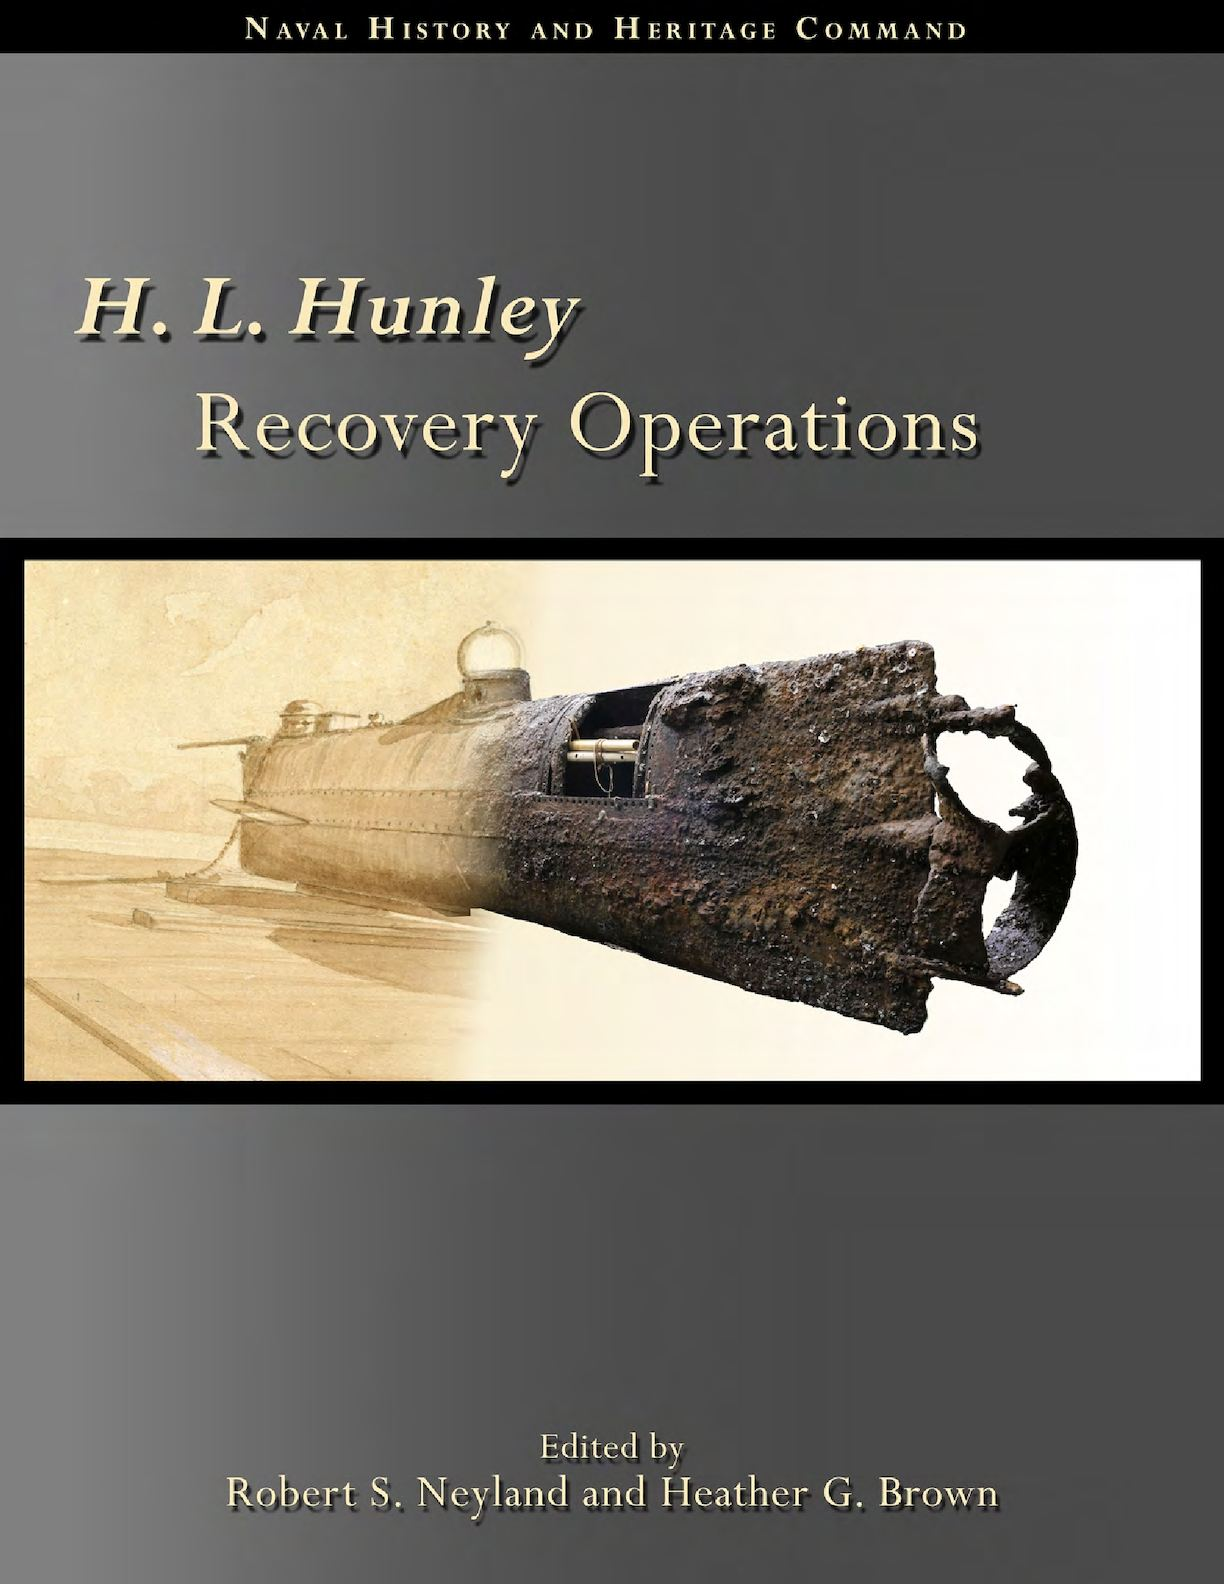 4275da63f9a10 Calaméo - Hlhunley Recovery Operations 20161123 Final Revised With ...